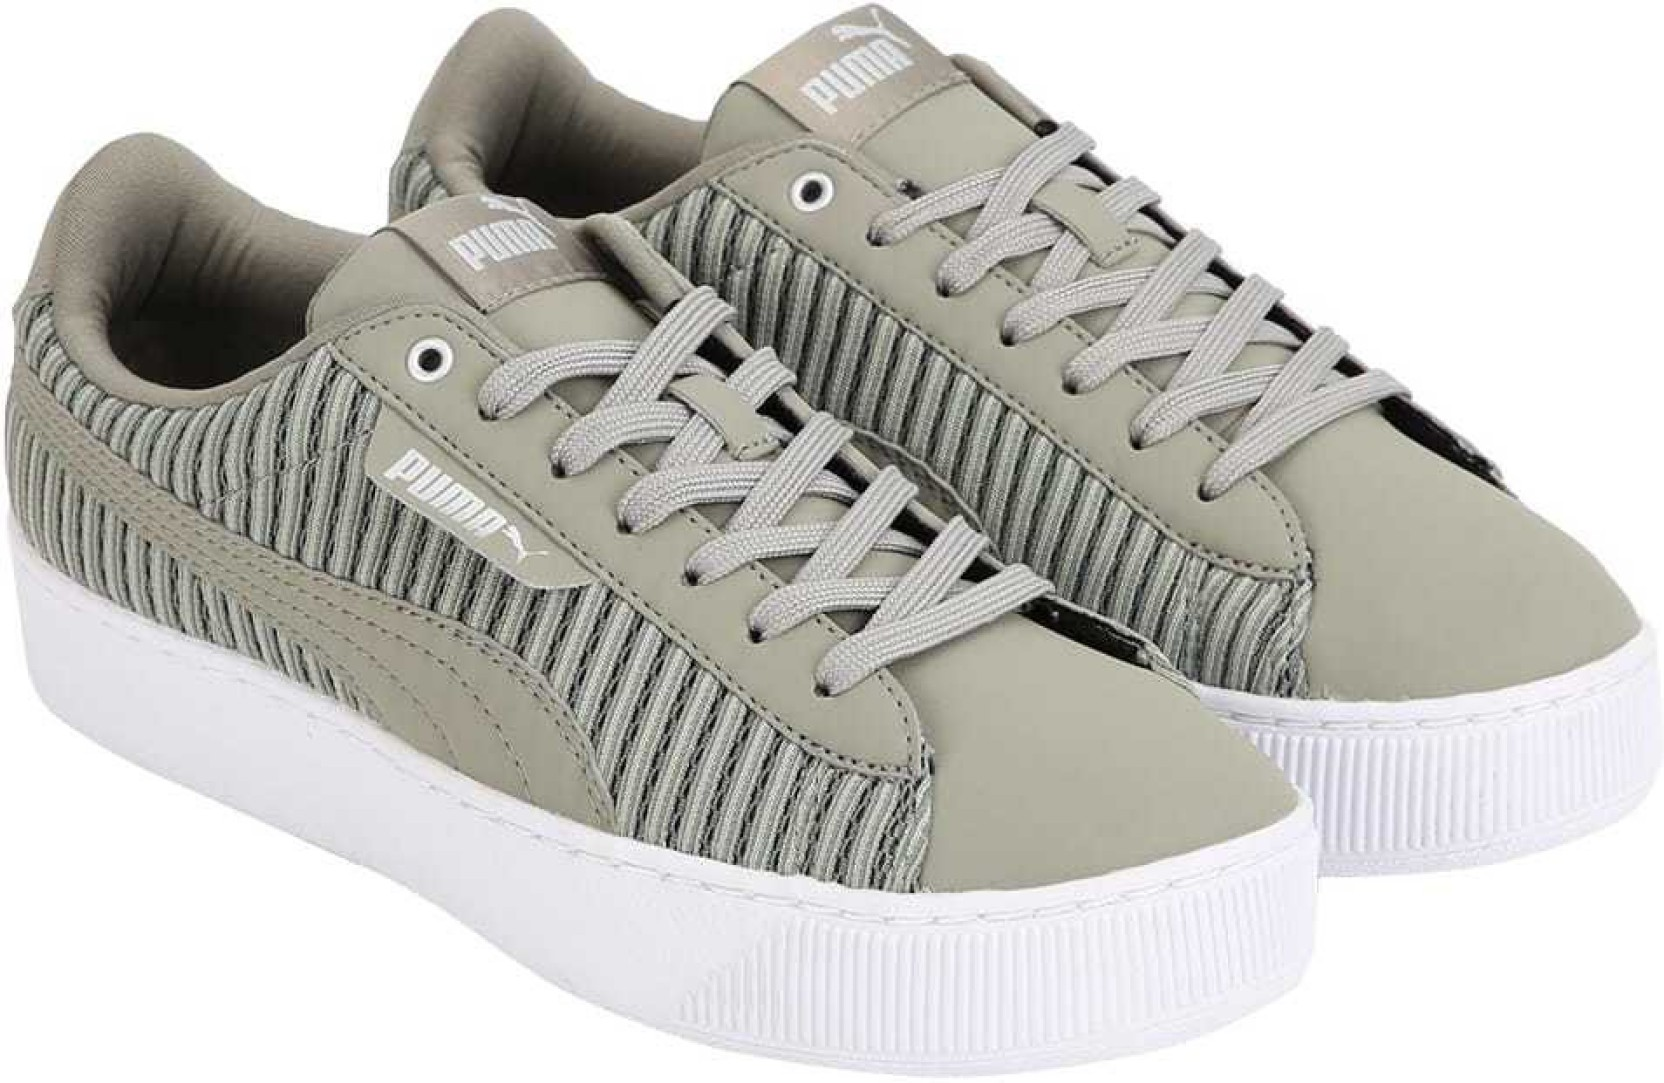 744d72bb35c Puma Vikky Platform EP Q2 Sneakers For Women. ADD TO CART. BUY NOW